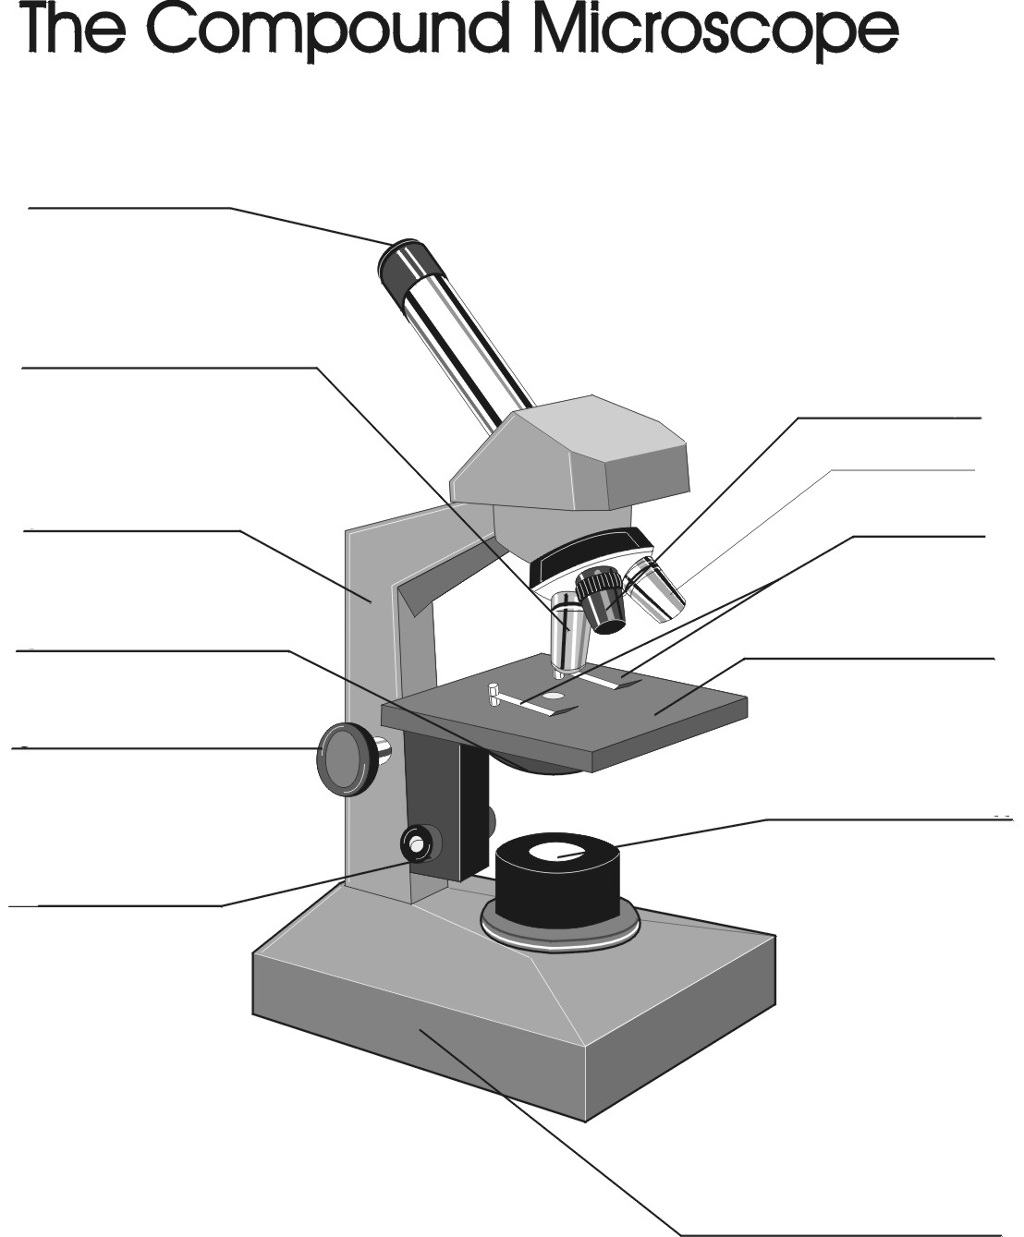 Worksheets The Compound Microscope Worksheet collection of the compound microscope worksheet bloggakuten bloggakuten